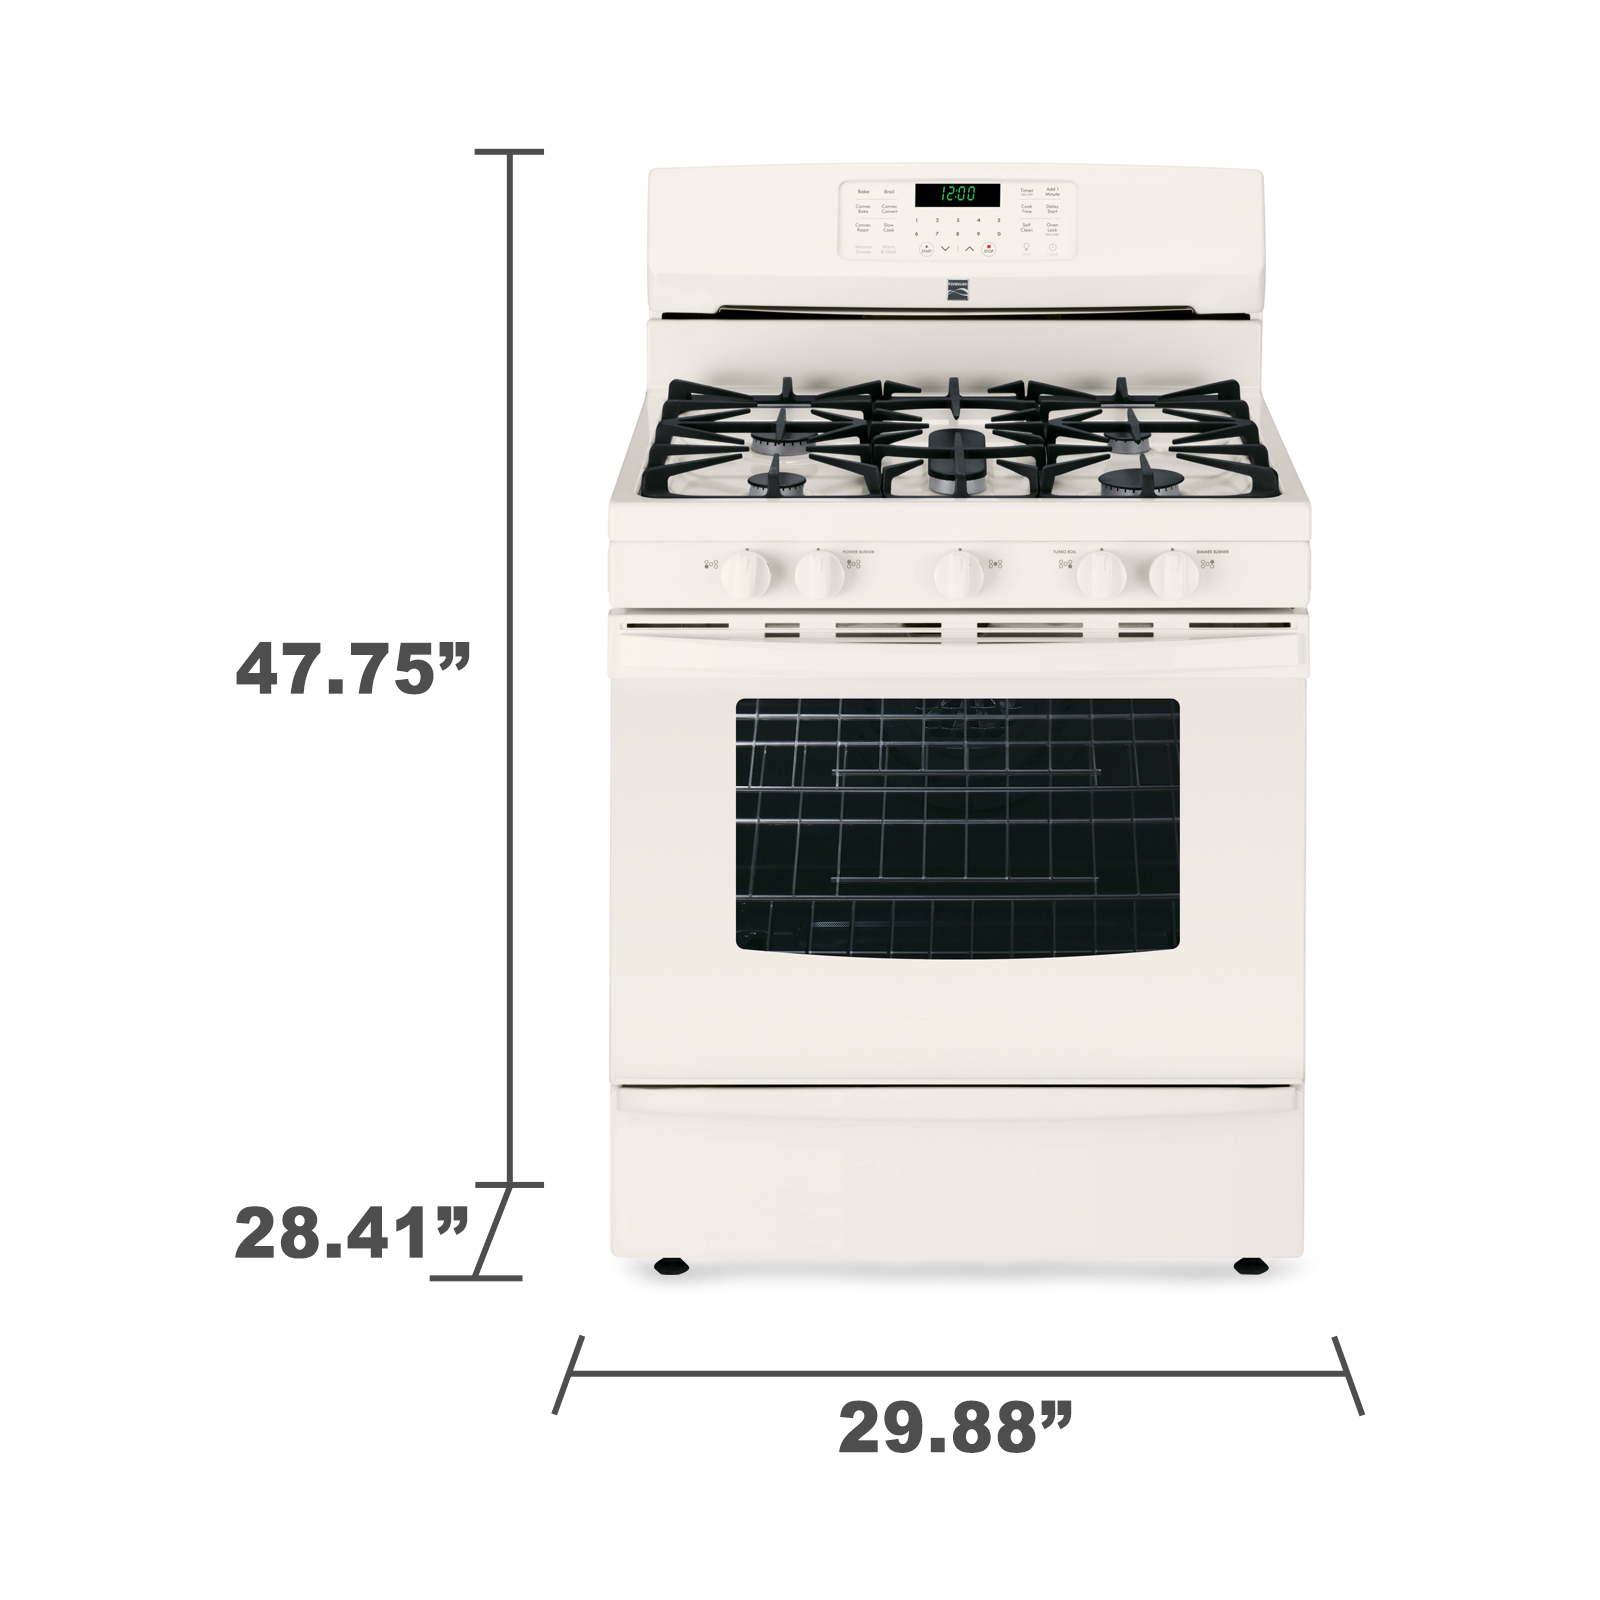 Kenmore 74334 5.6 cu. ft. Gas Range w/ True Convection Oven - Bisque